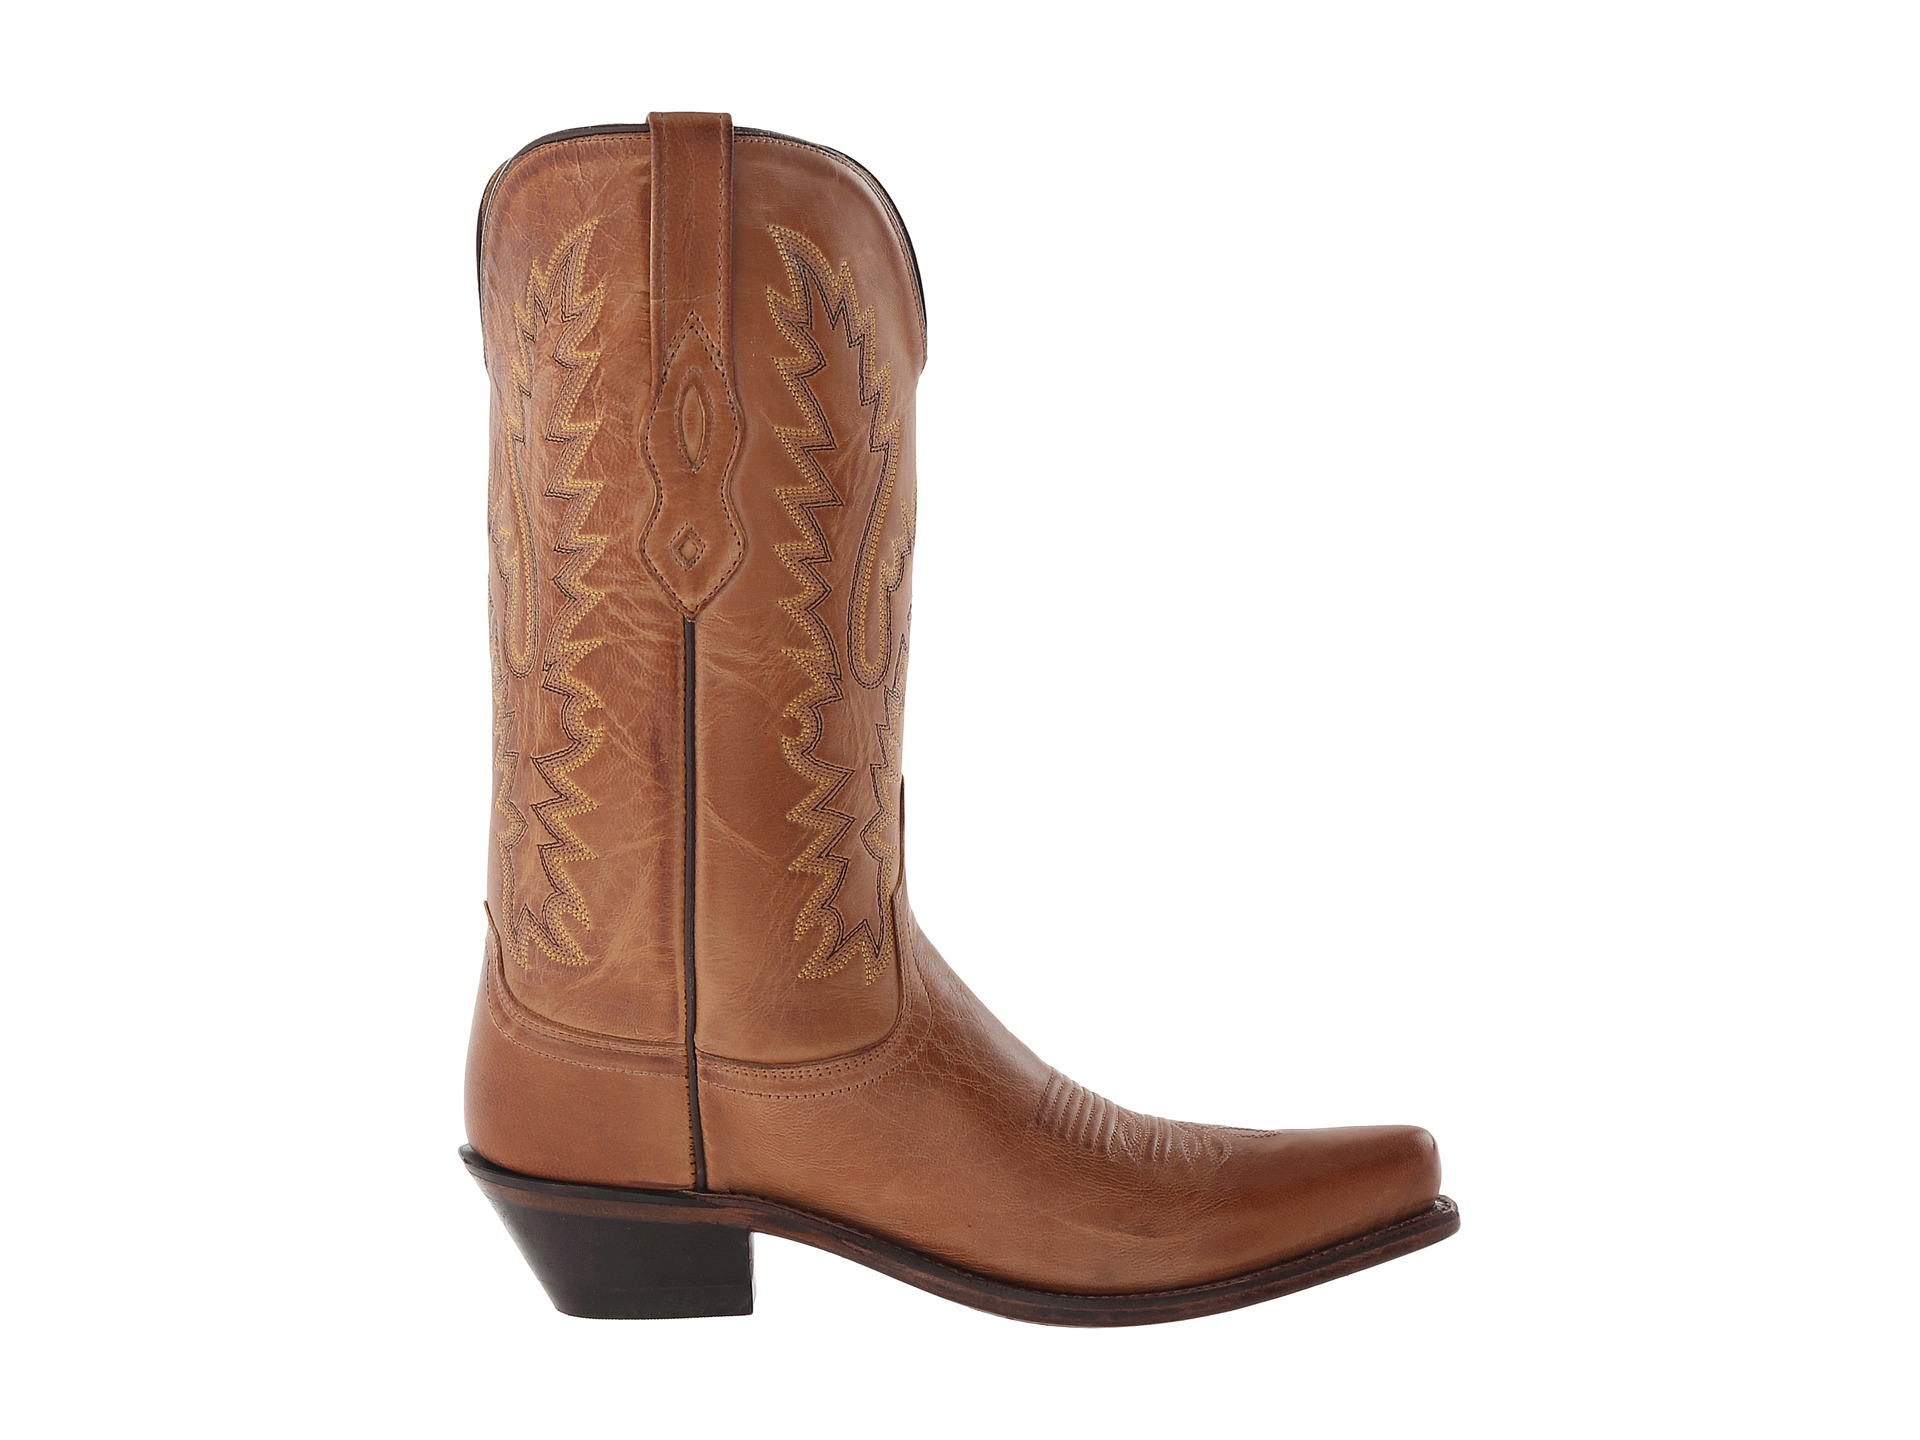 Old west boots lf1529 zappos com free shipping both ways